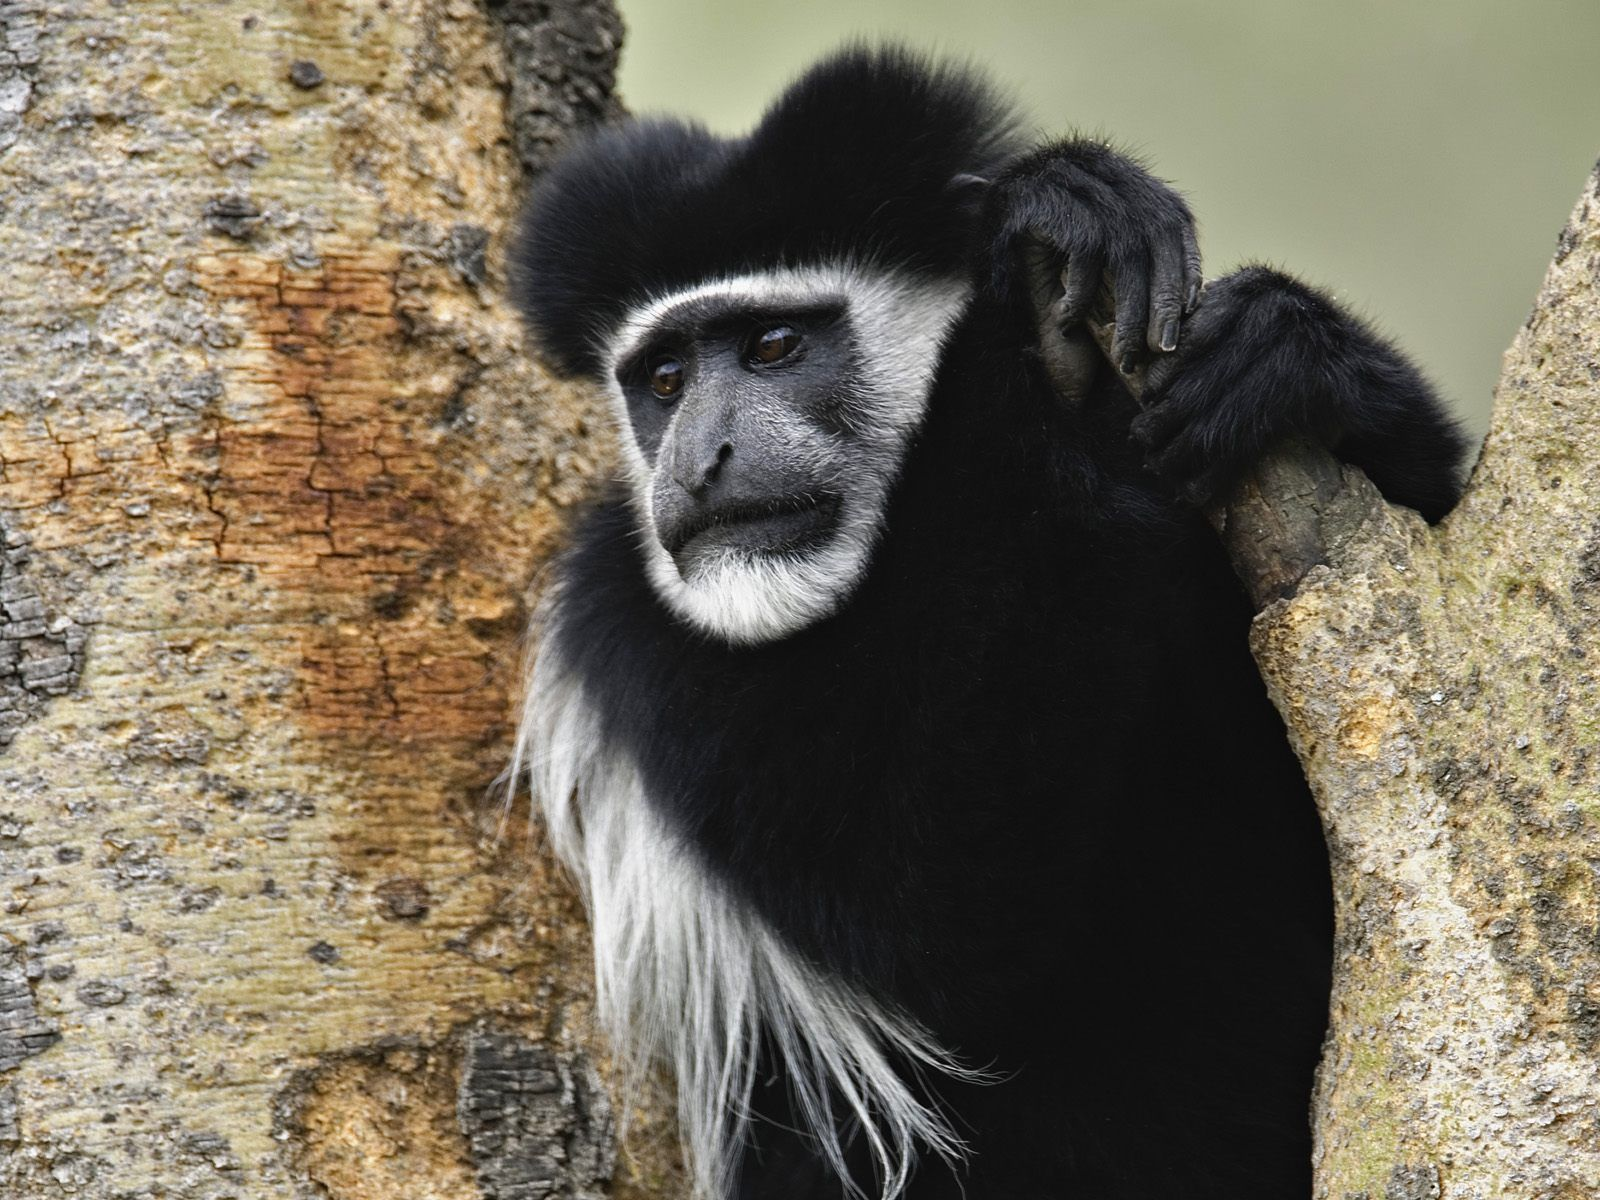 abyssinian black and white colobus monkey lake nakuru national park kenya